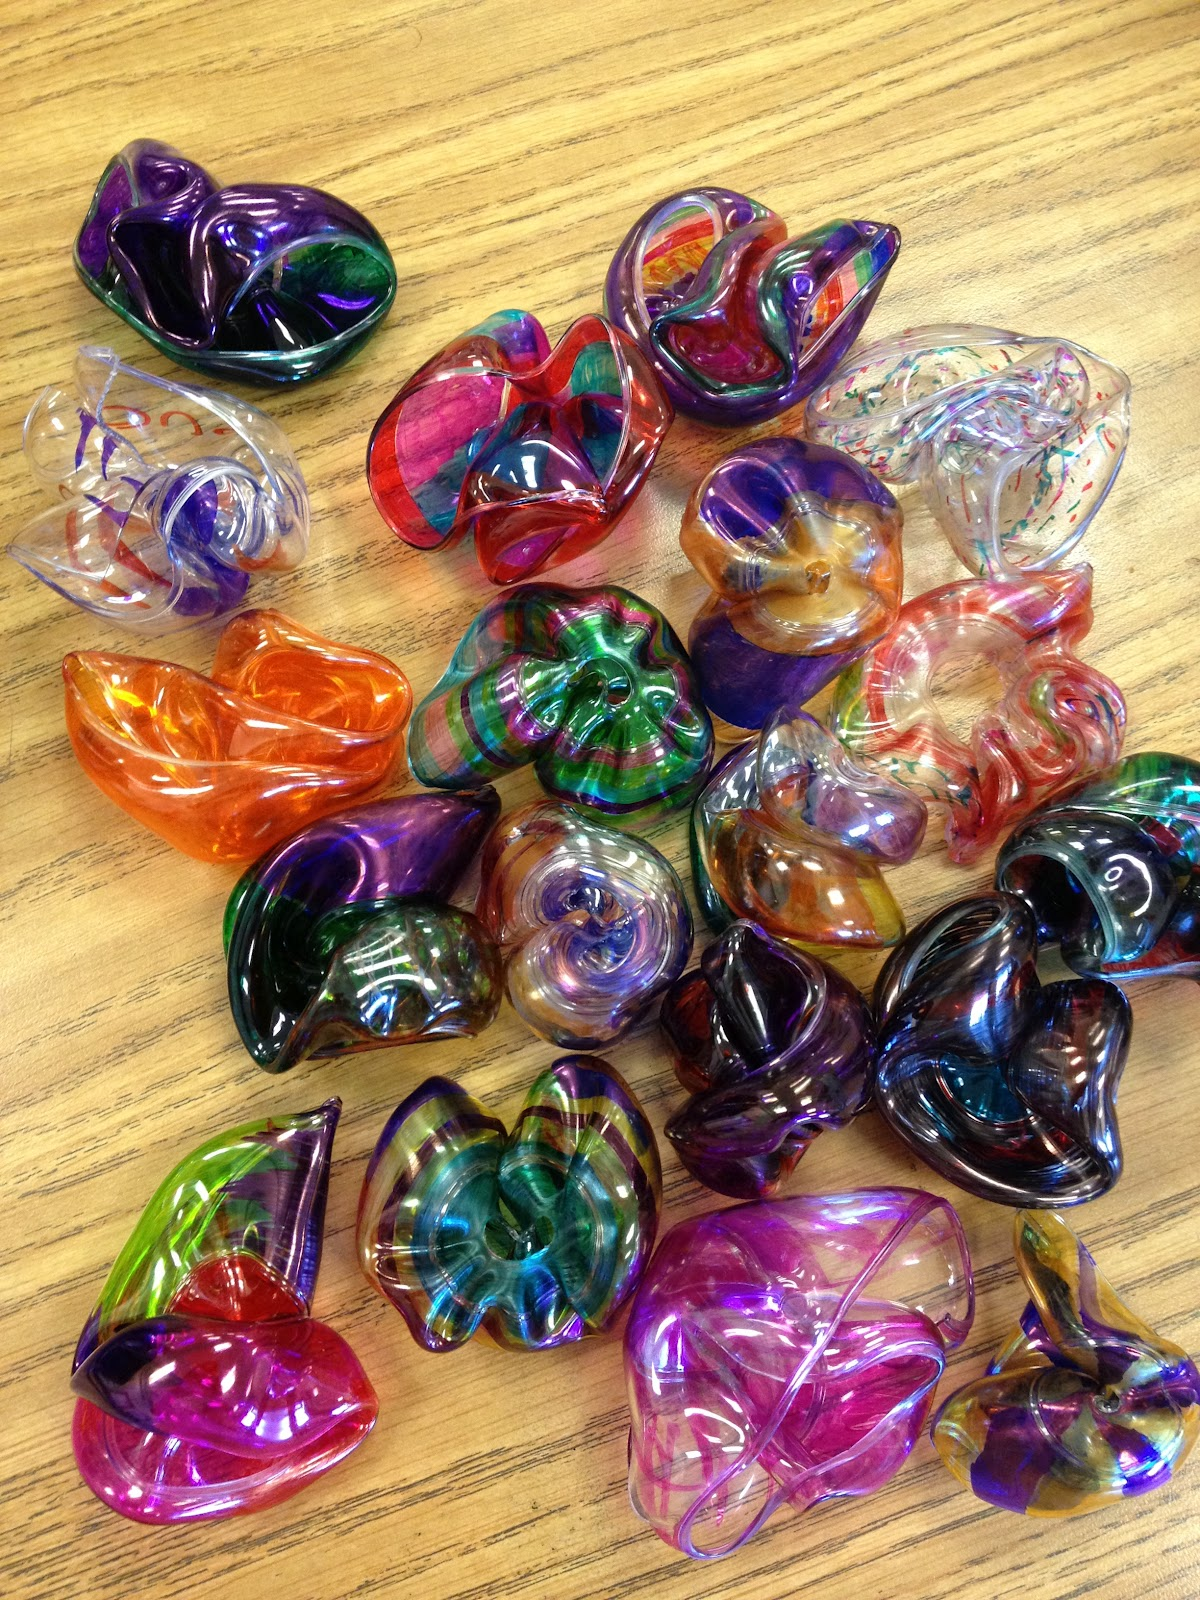 Mizzsmiff 39 s art room melted glass dale chihuly and blobs for Plexiglass arts and crafts